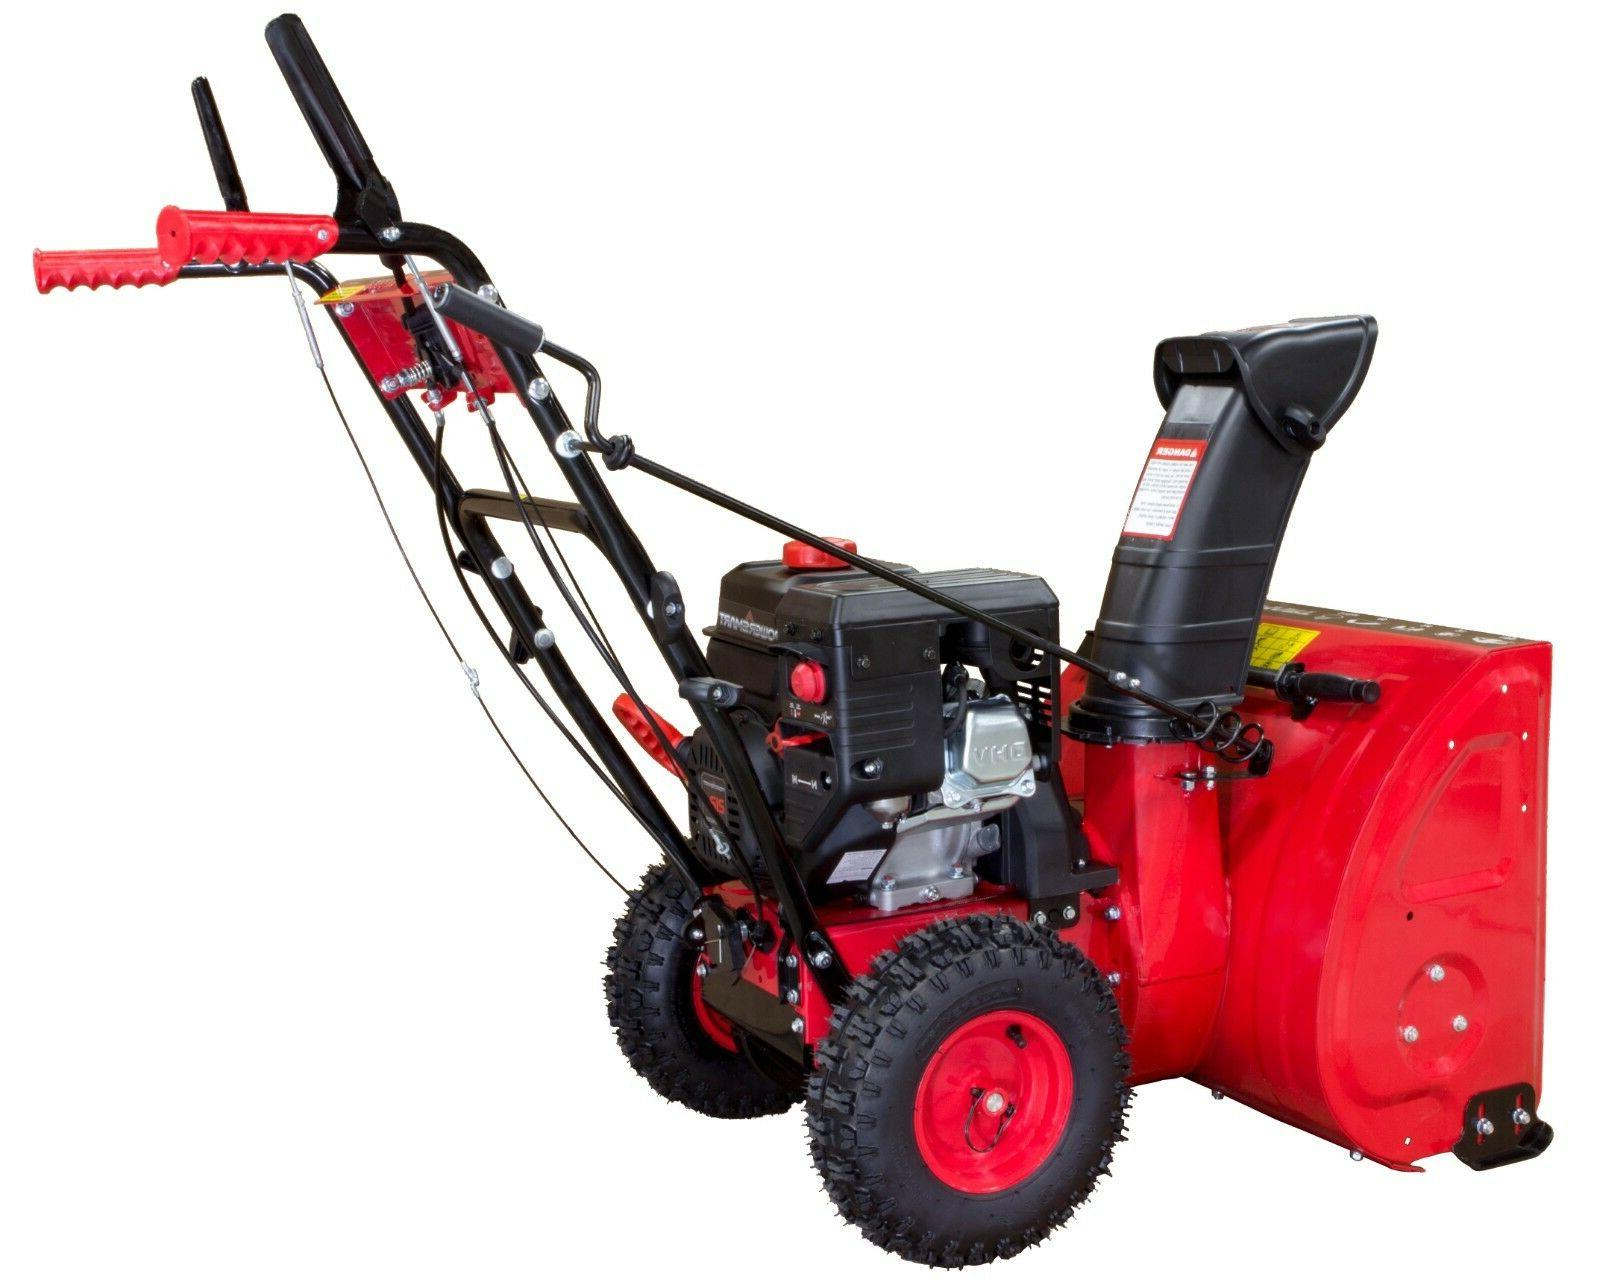 Power DB7624E1 24in. 2-Stage Gas Snow Blower